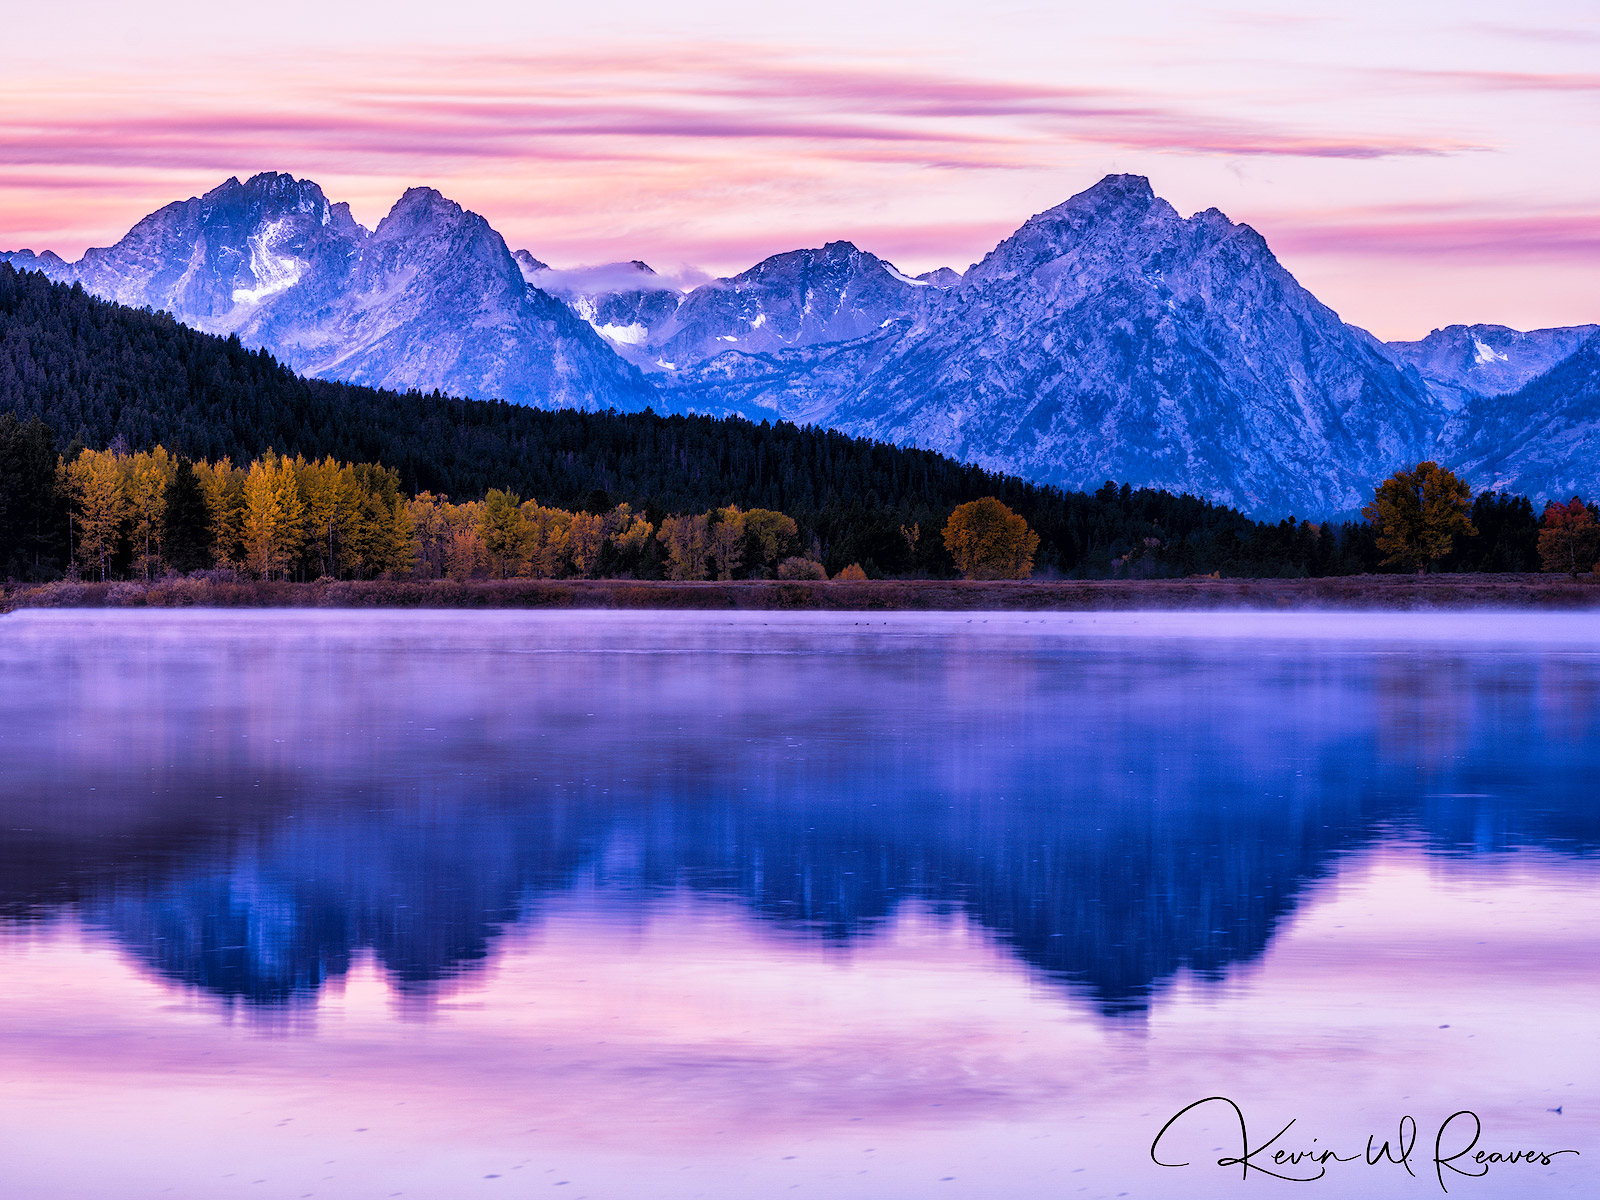 This was one of two mornings we had clouds, and I had hoped the clouds and color would have been more above Mt. Moran.  But in...